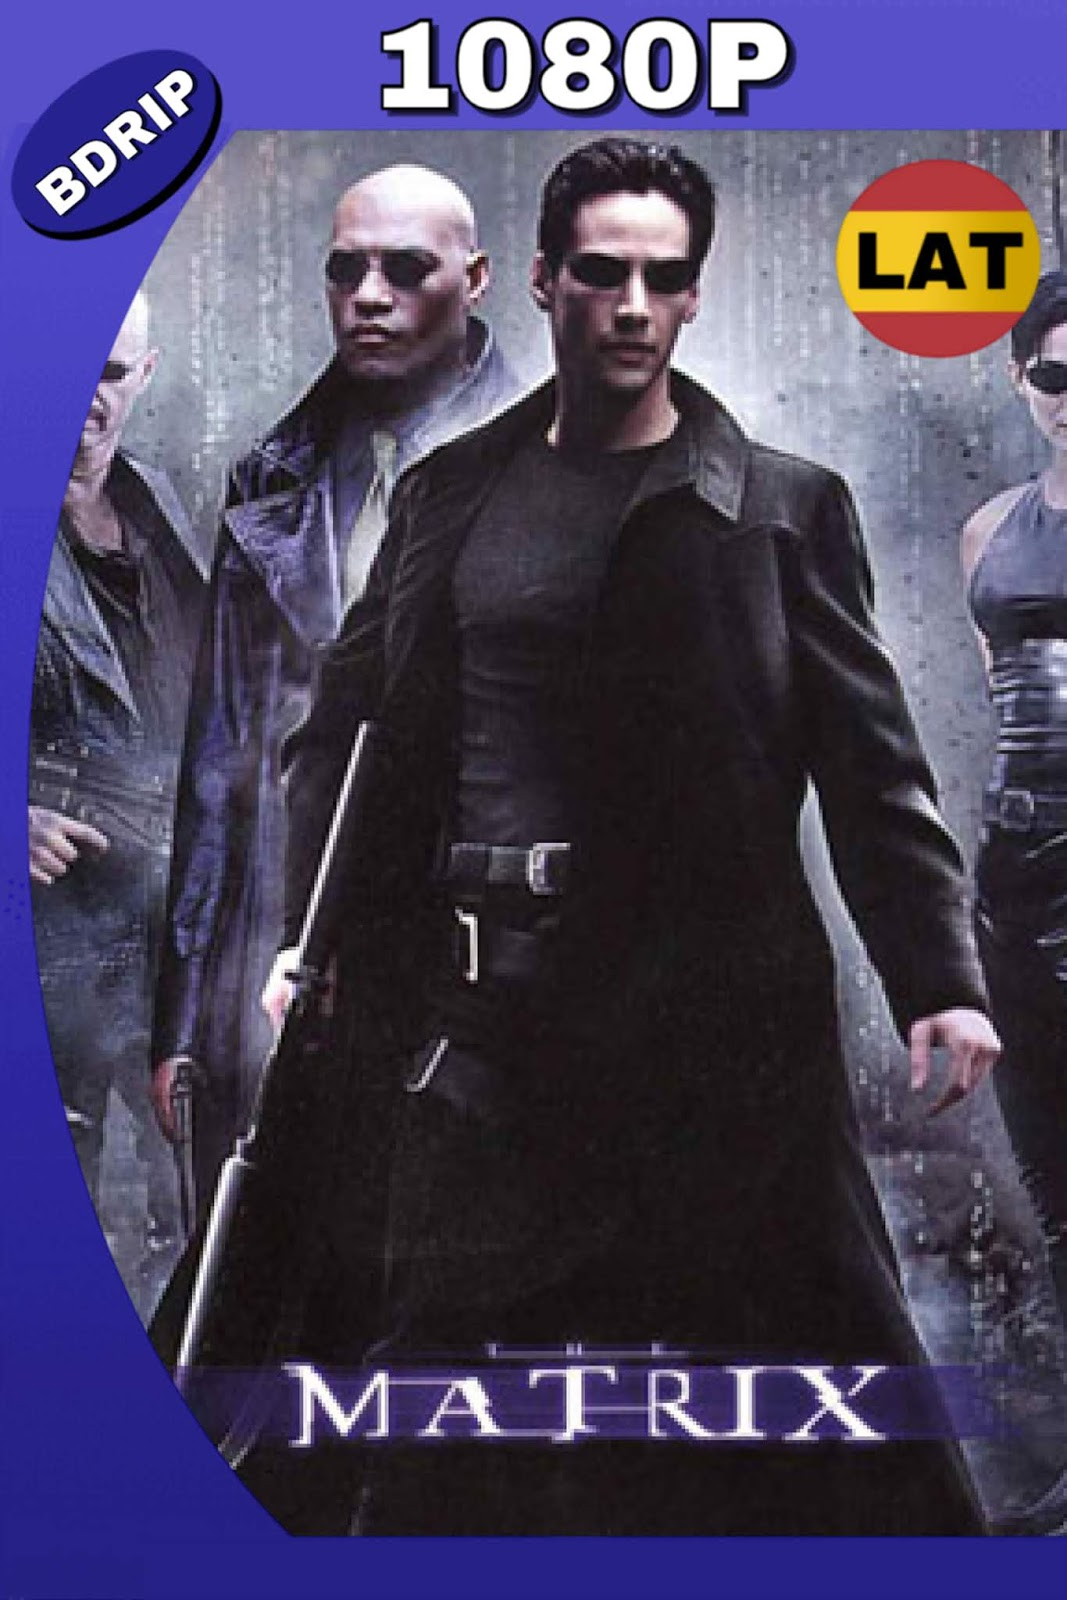 THE MATRIX 1999 REMASTERED LAT-ING FULL 1080P 9GB.mkv